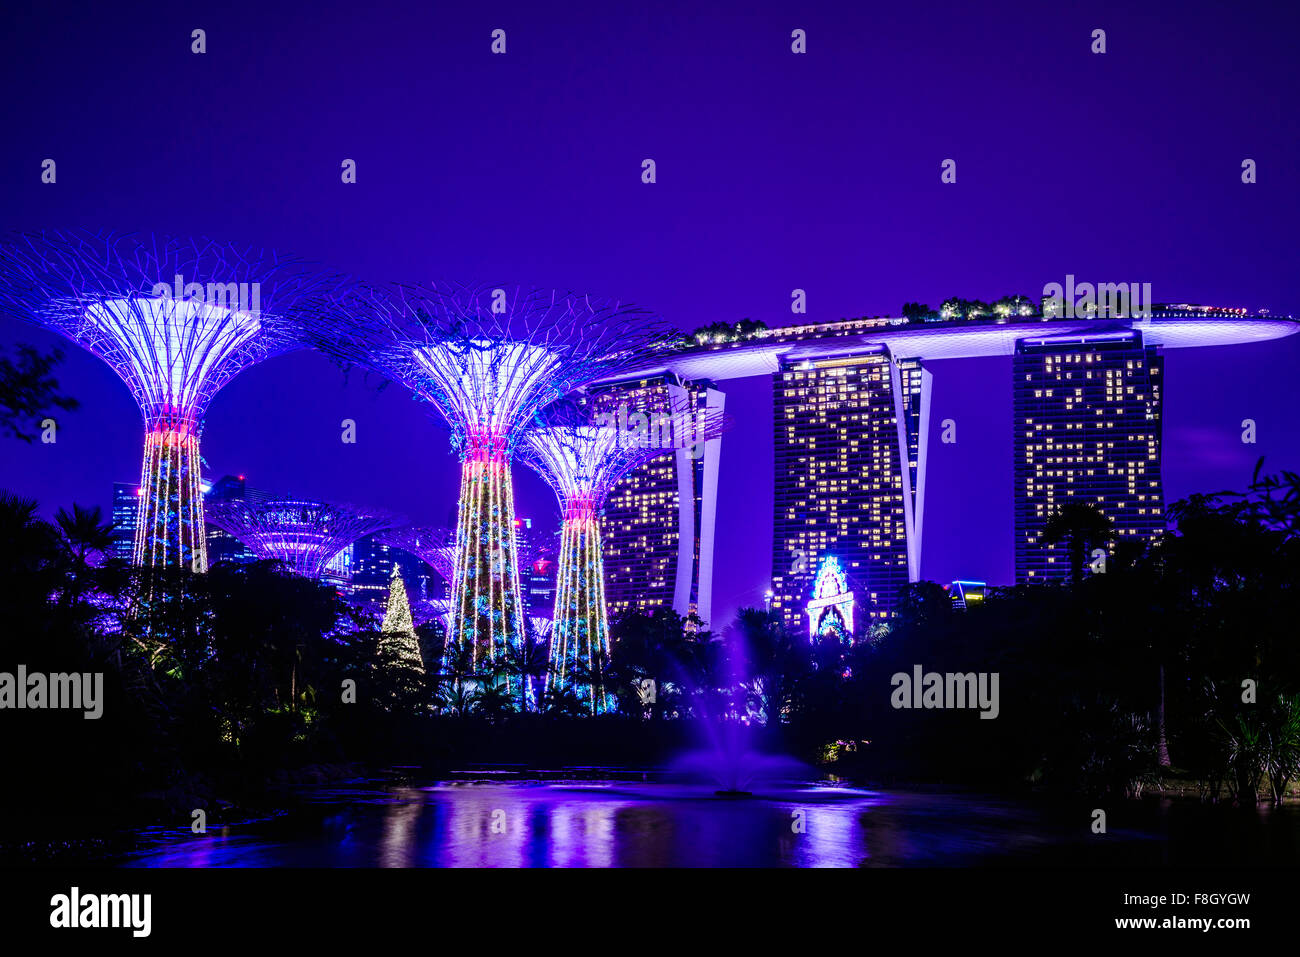 Singapore Marina nachts beleuchtet Stockbild